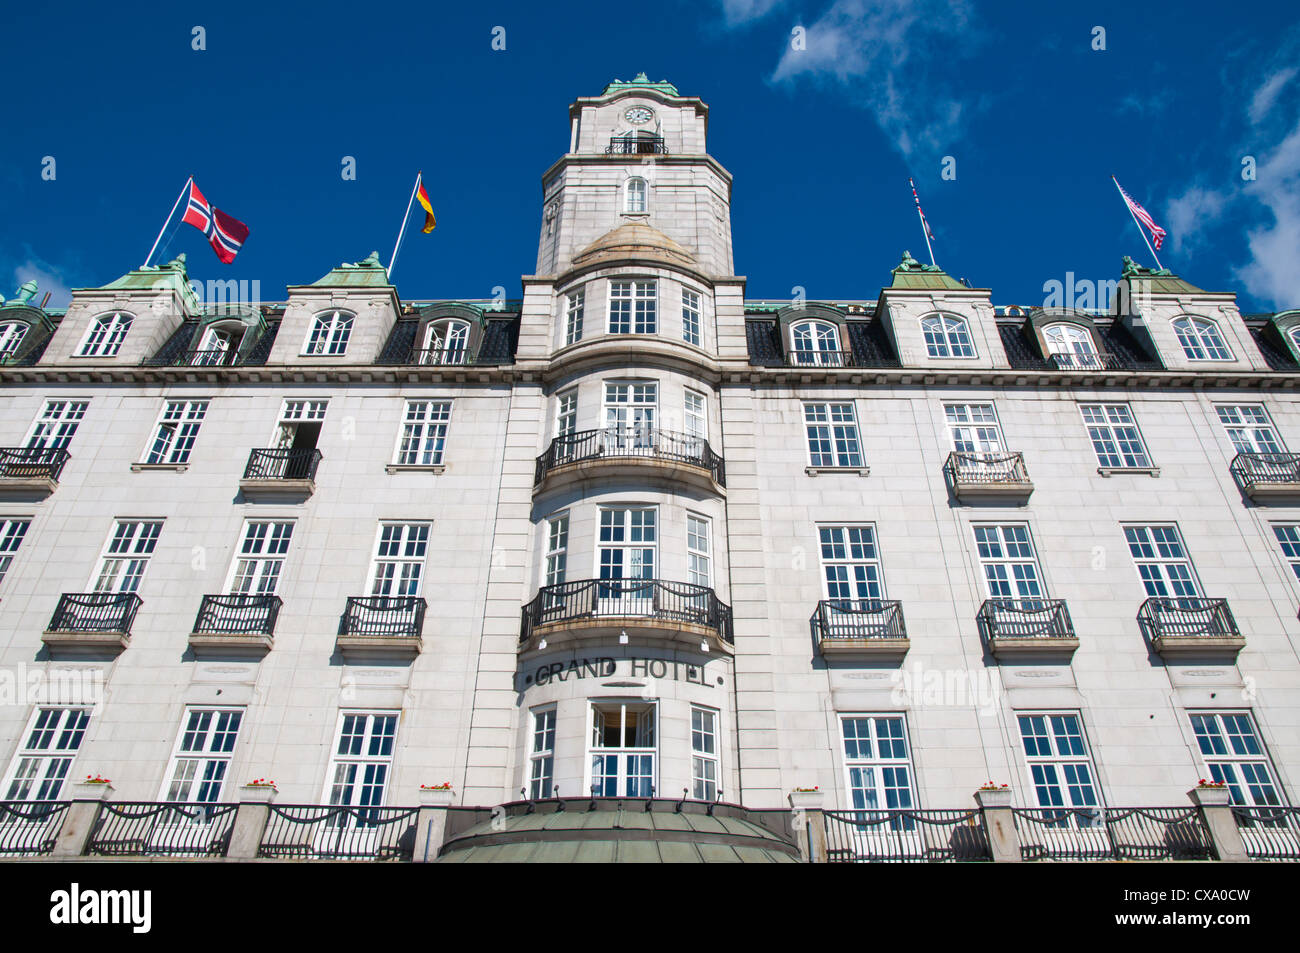 Grand Hotel is housed in building from 1874 along Karl Johans Gate street Sentrum central Oslo Norway Europe - Stock Image